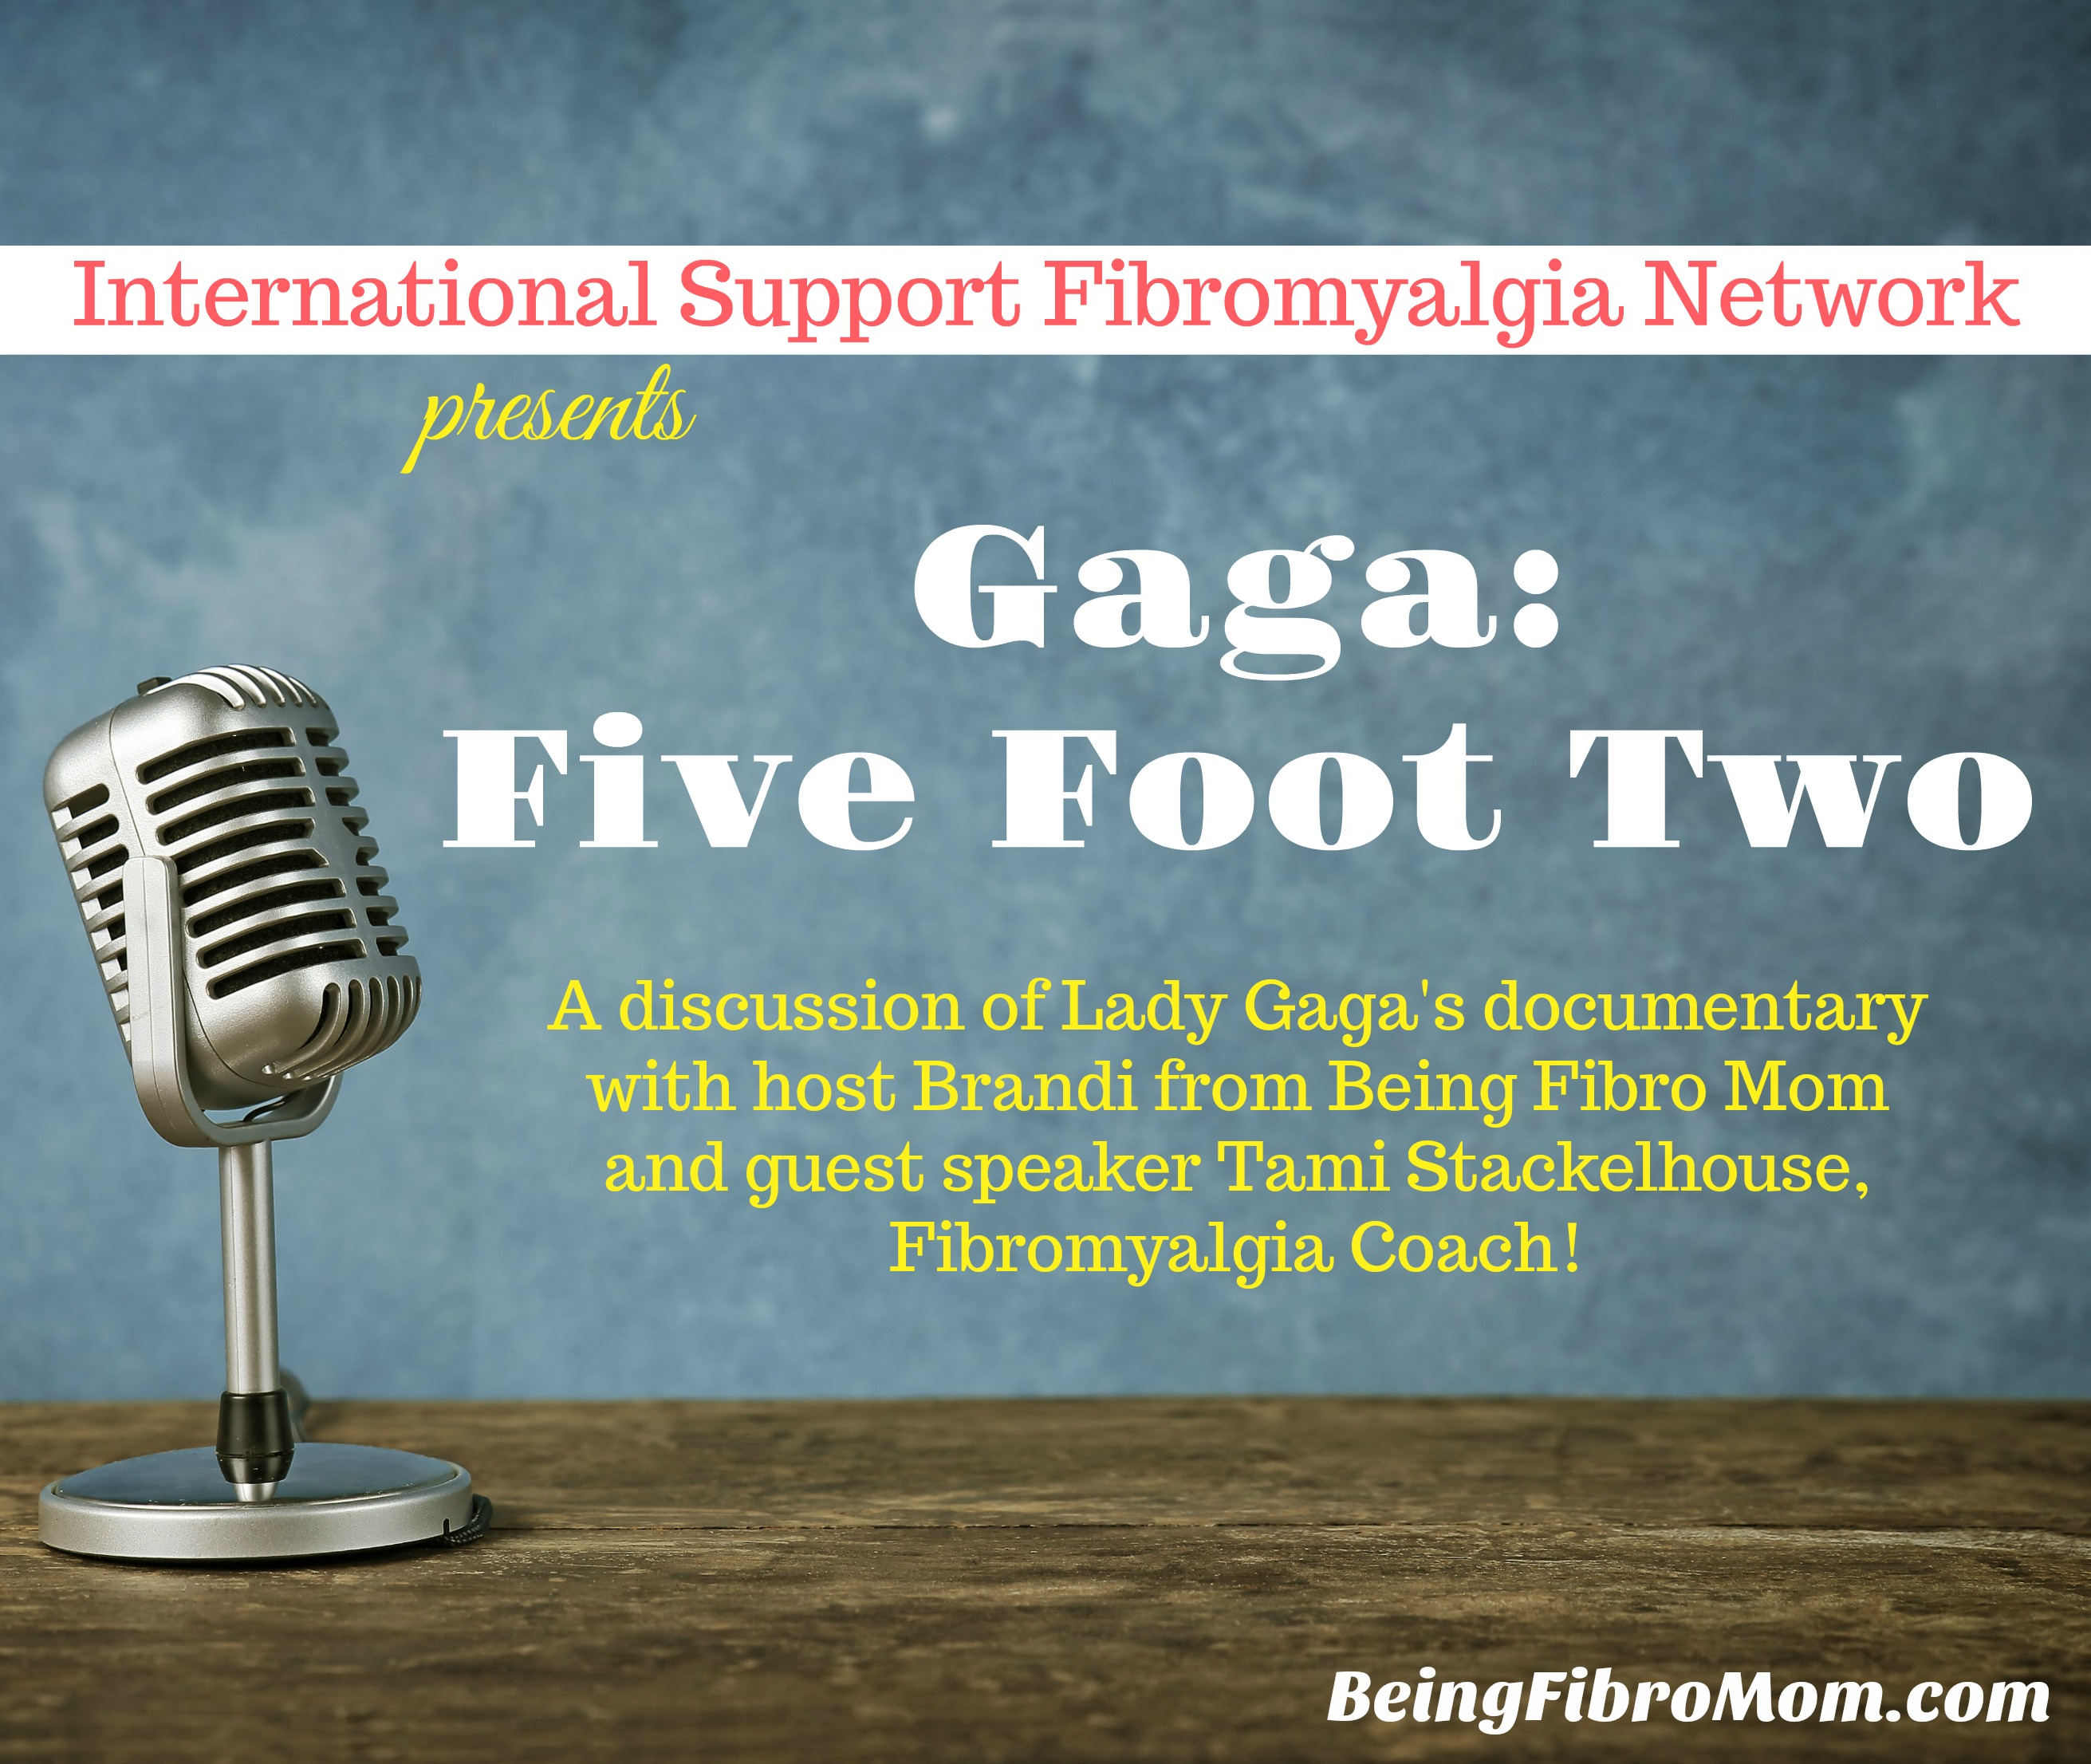 Gaga Five Foot Two discussion #ISFN #beingfibromom #GagaFiveFootTwo